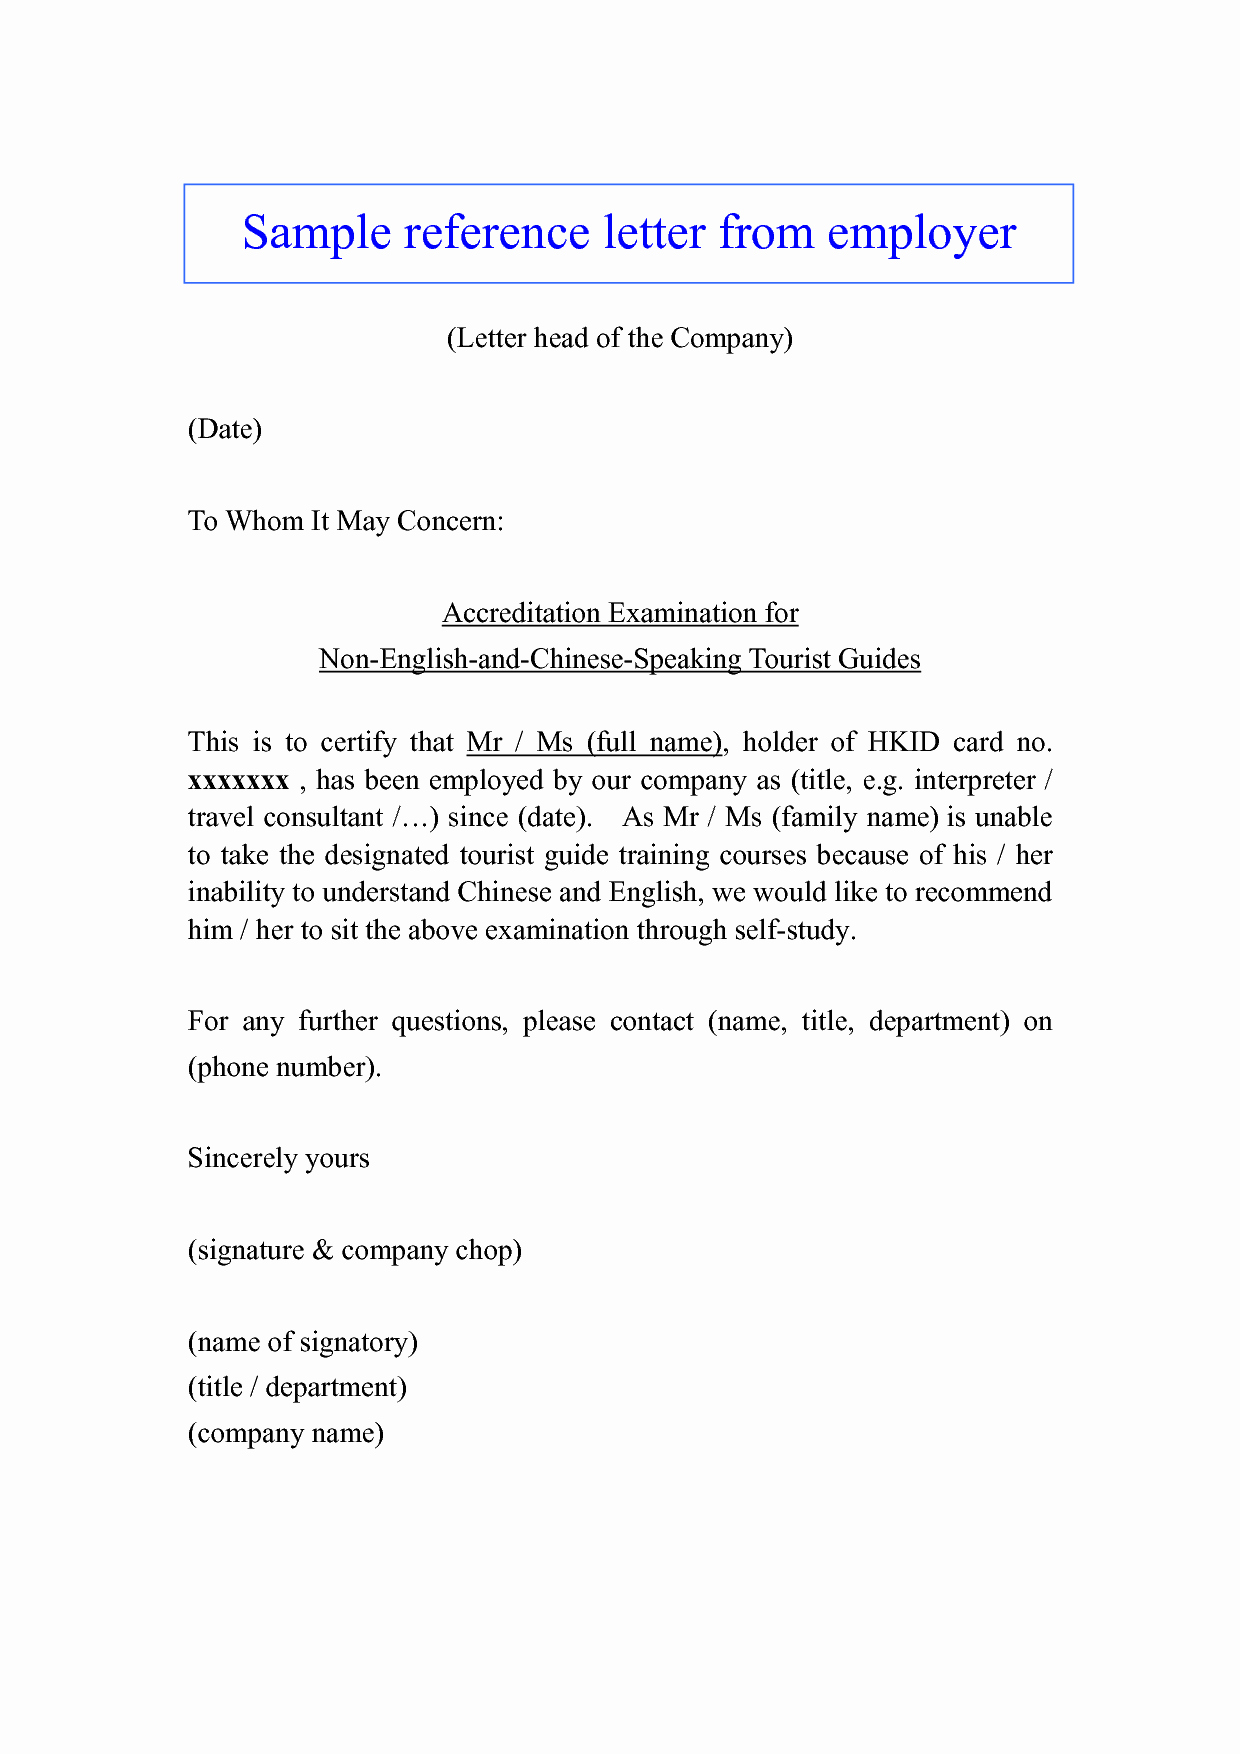 Sample Letter Of Recommendation Employee Beautiful Sample Re Mendation Letter From former Employer